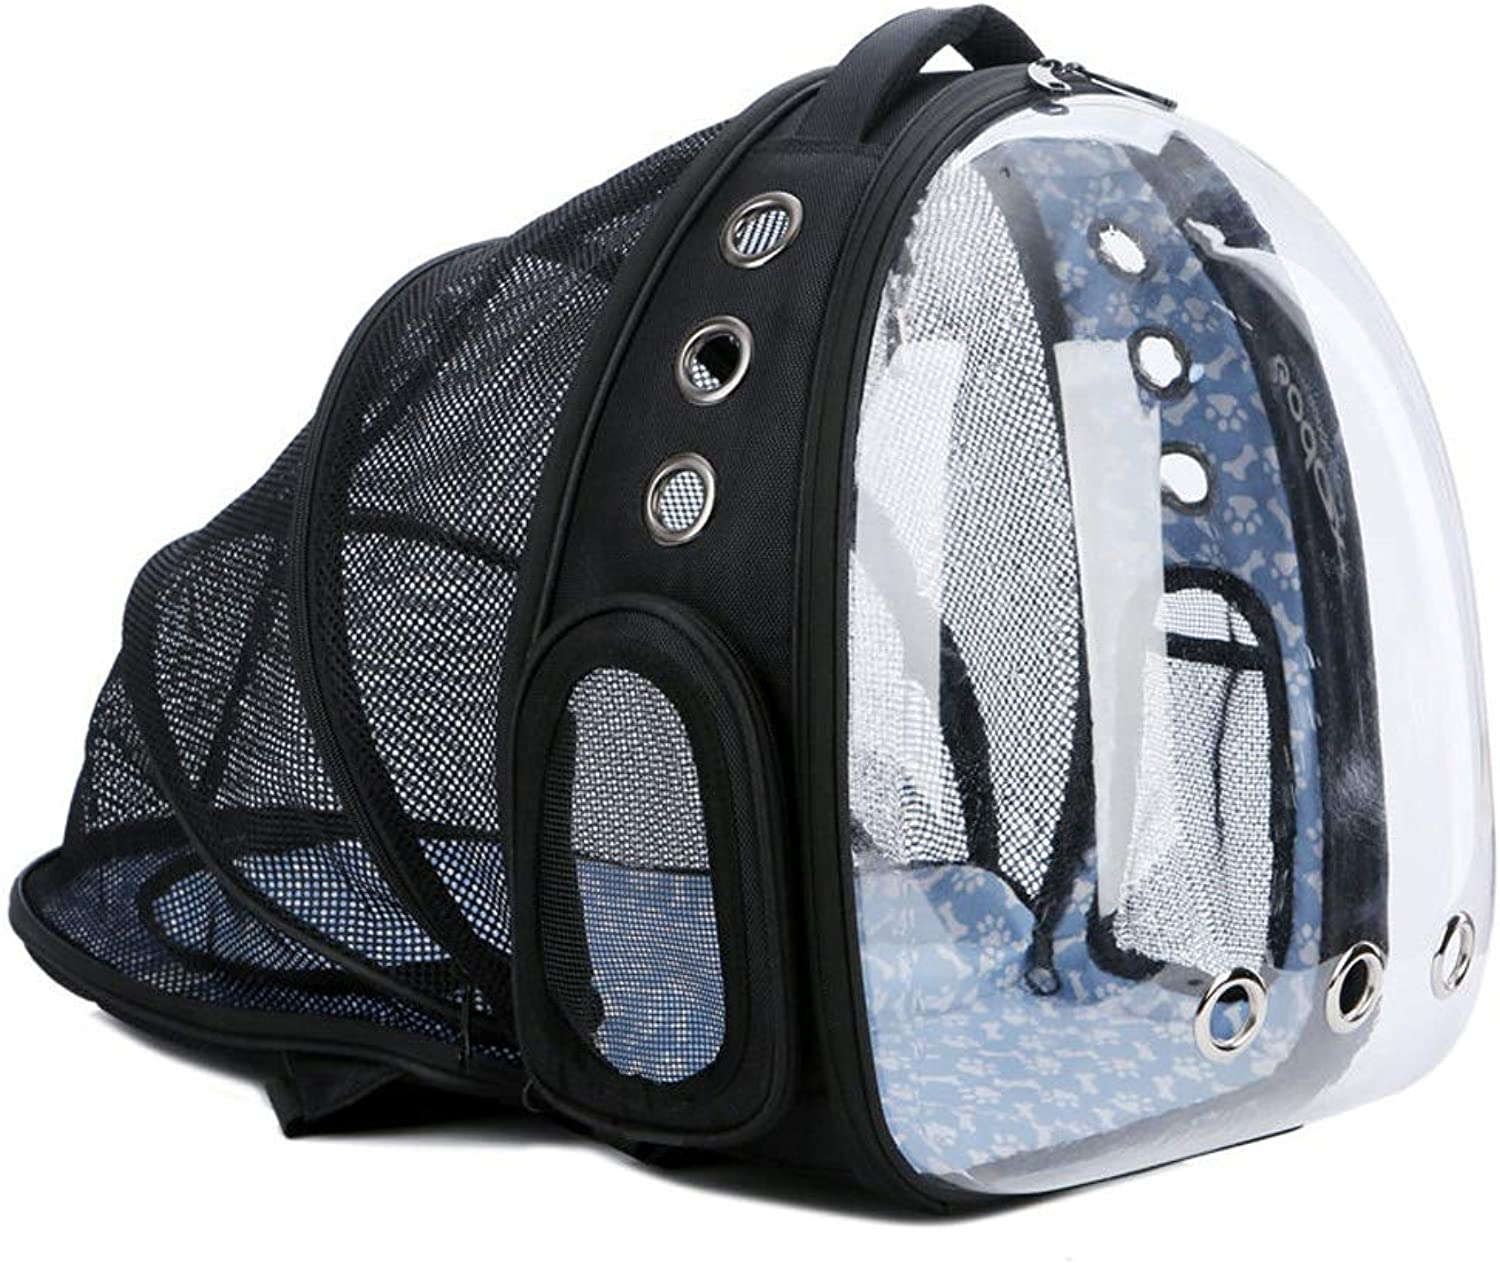 High Capacity Portable Pet Cats Carrier Transparent Capsule Breathable Cats Bag Outdoor Travel Dog Cats Backpack Puppy Carrying Cage 38  28  42cm